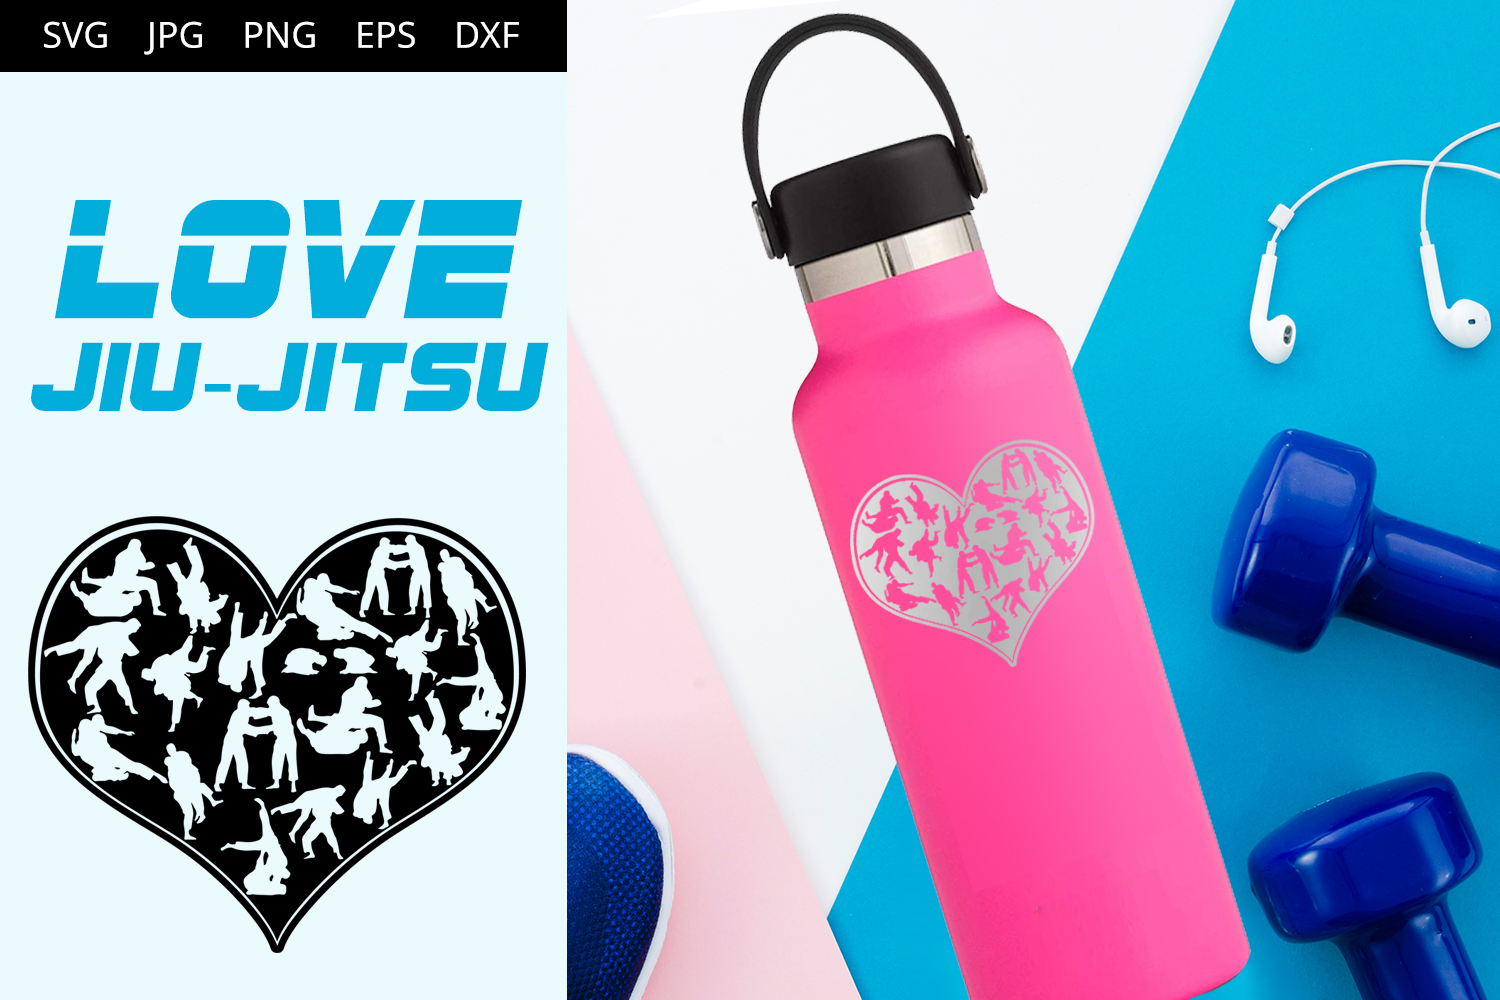 Download Free Love Brazilian Jiu Jitsu Graphic By Thesilhouettequeenshop for Cricut Explore, Silhouette and other cutting machines.